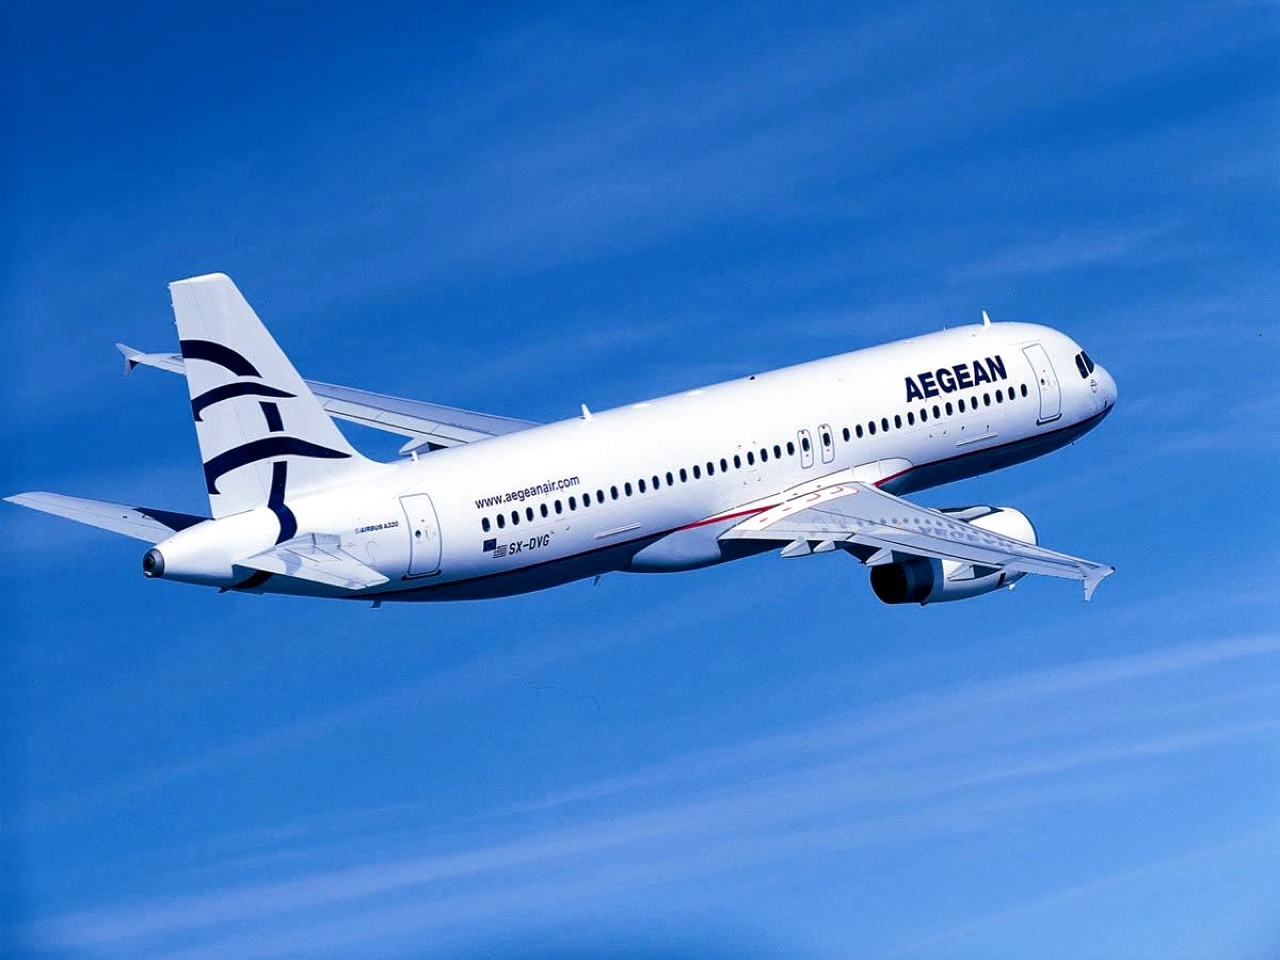 Special Offers For Your Flights To/From Crete With AEGEAN Airlines